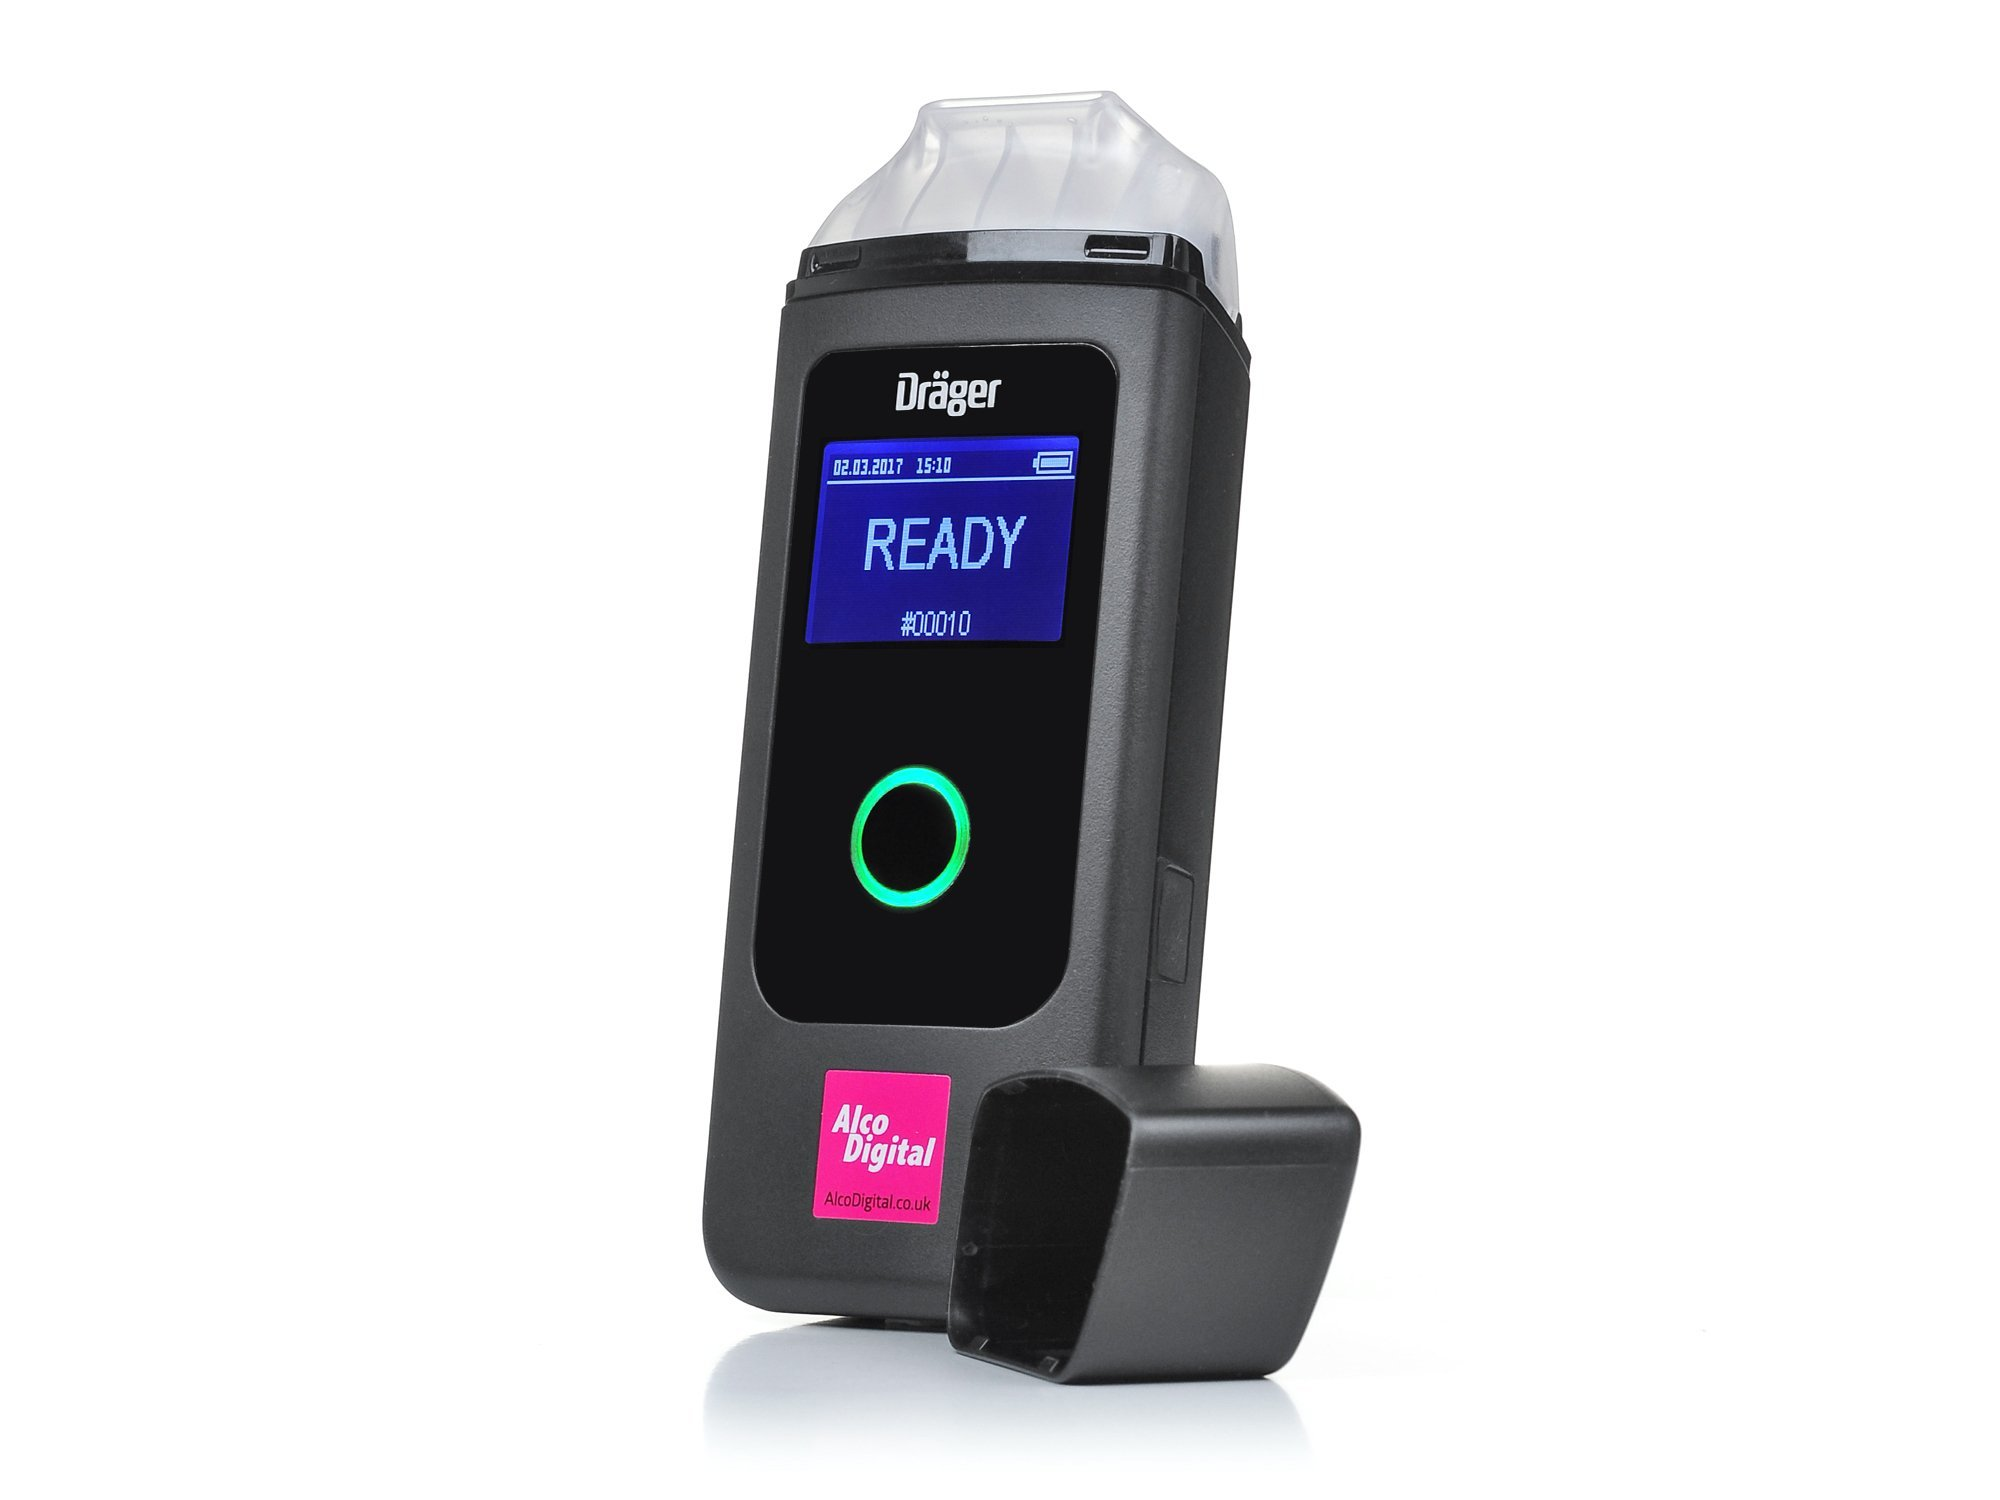 AlcoDigital 3820 Breathalyzer